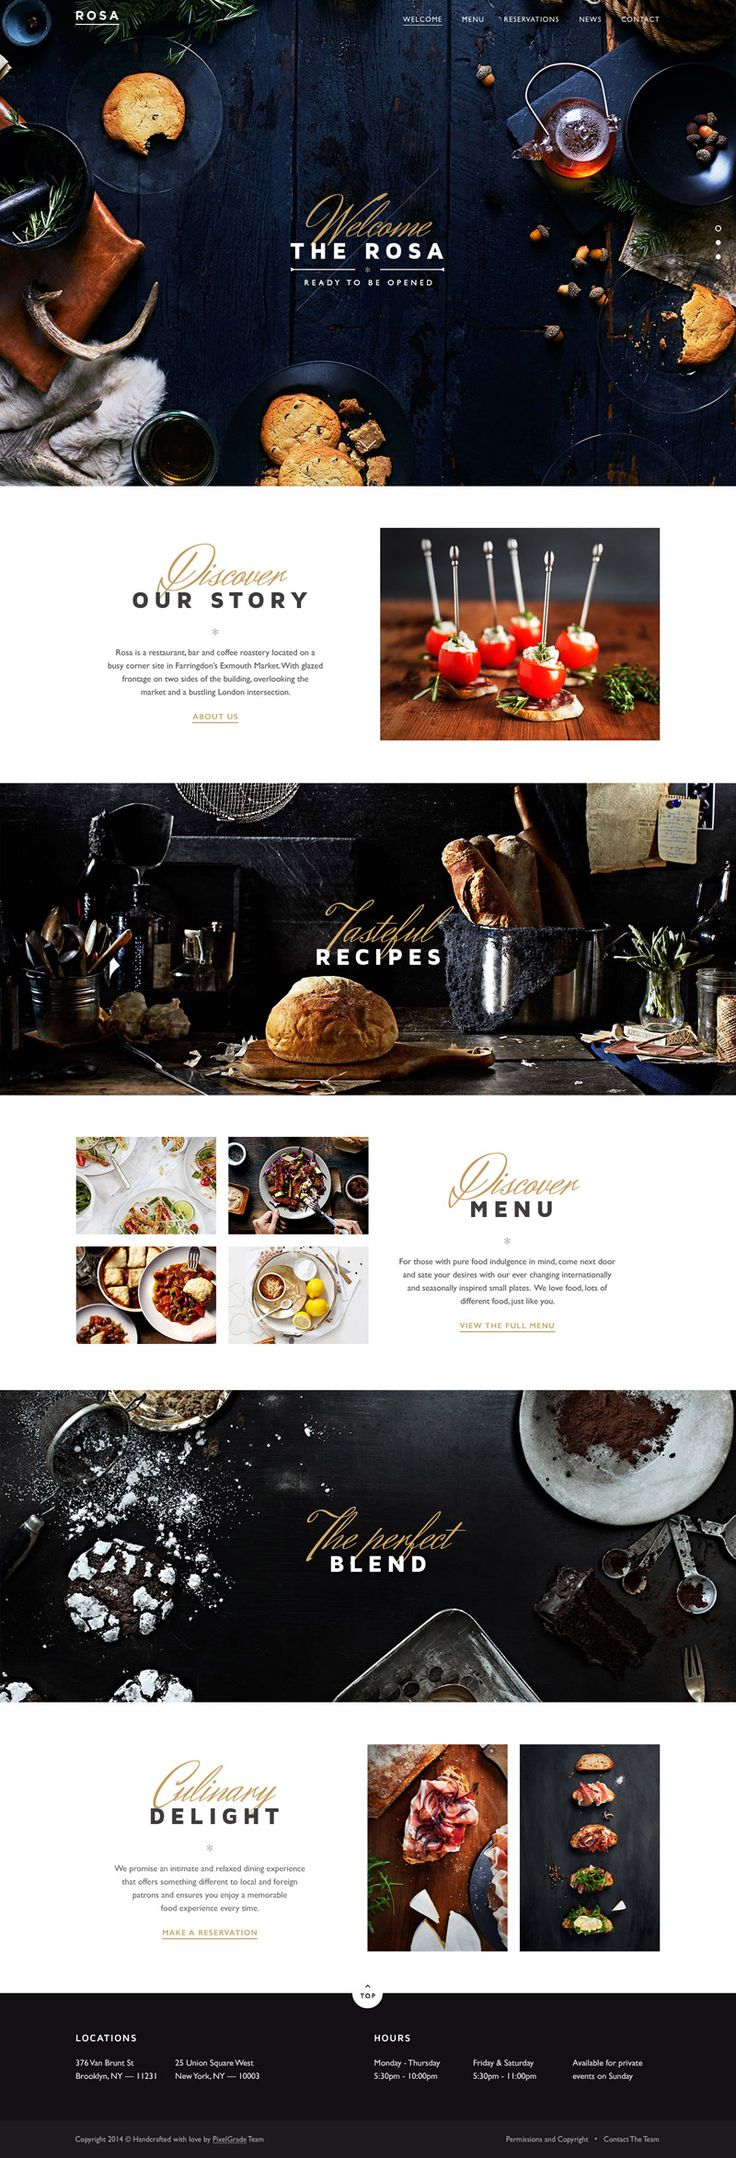 ROSA Restaurant Website